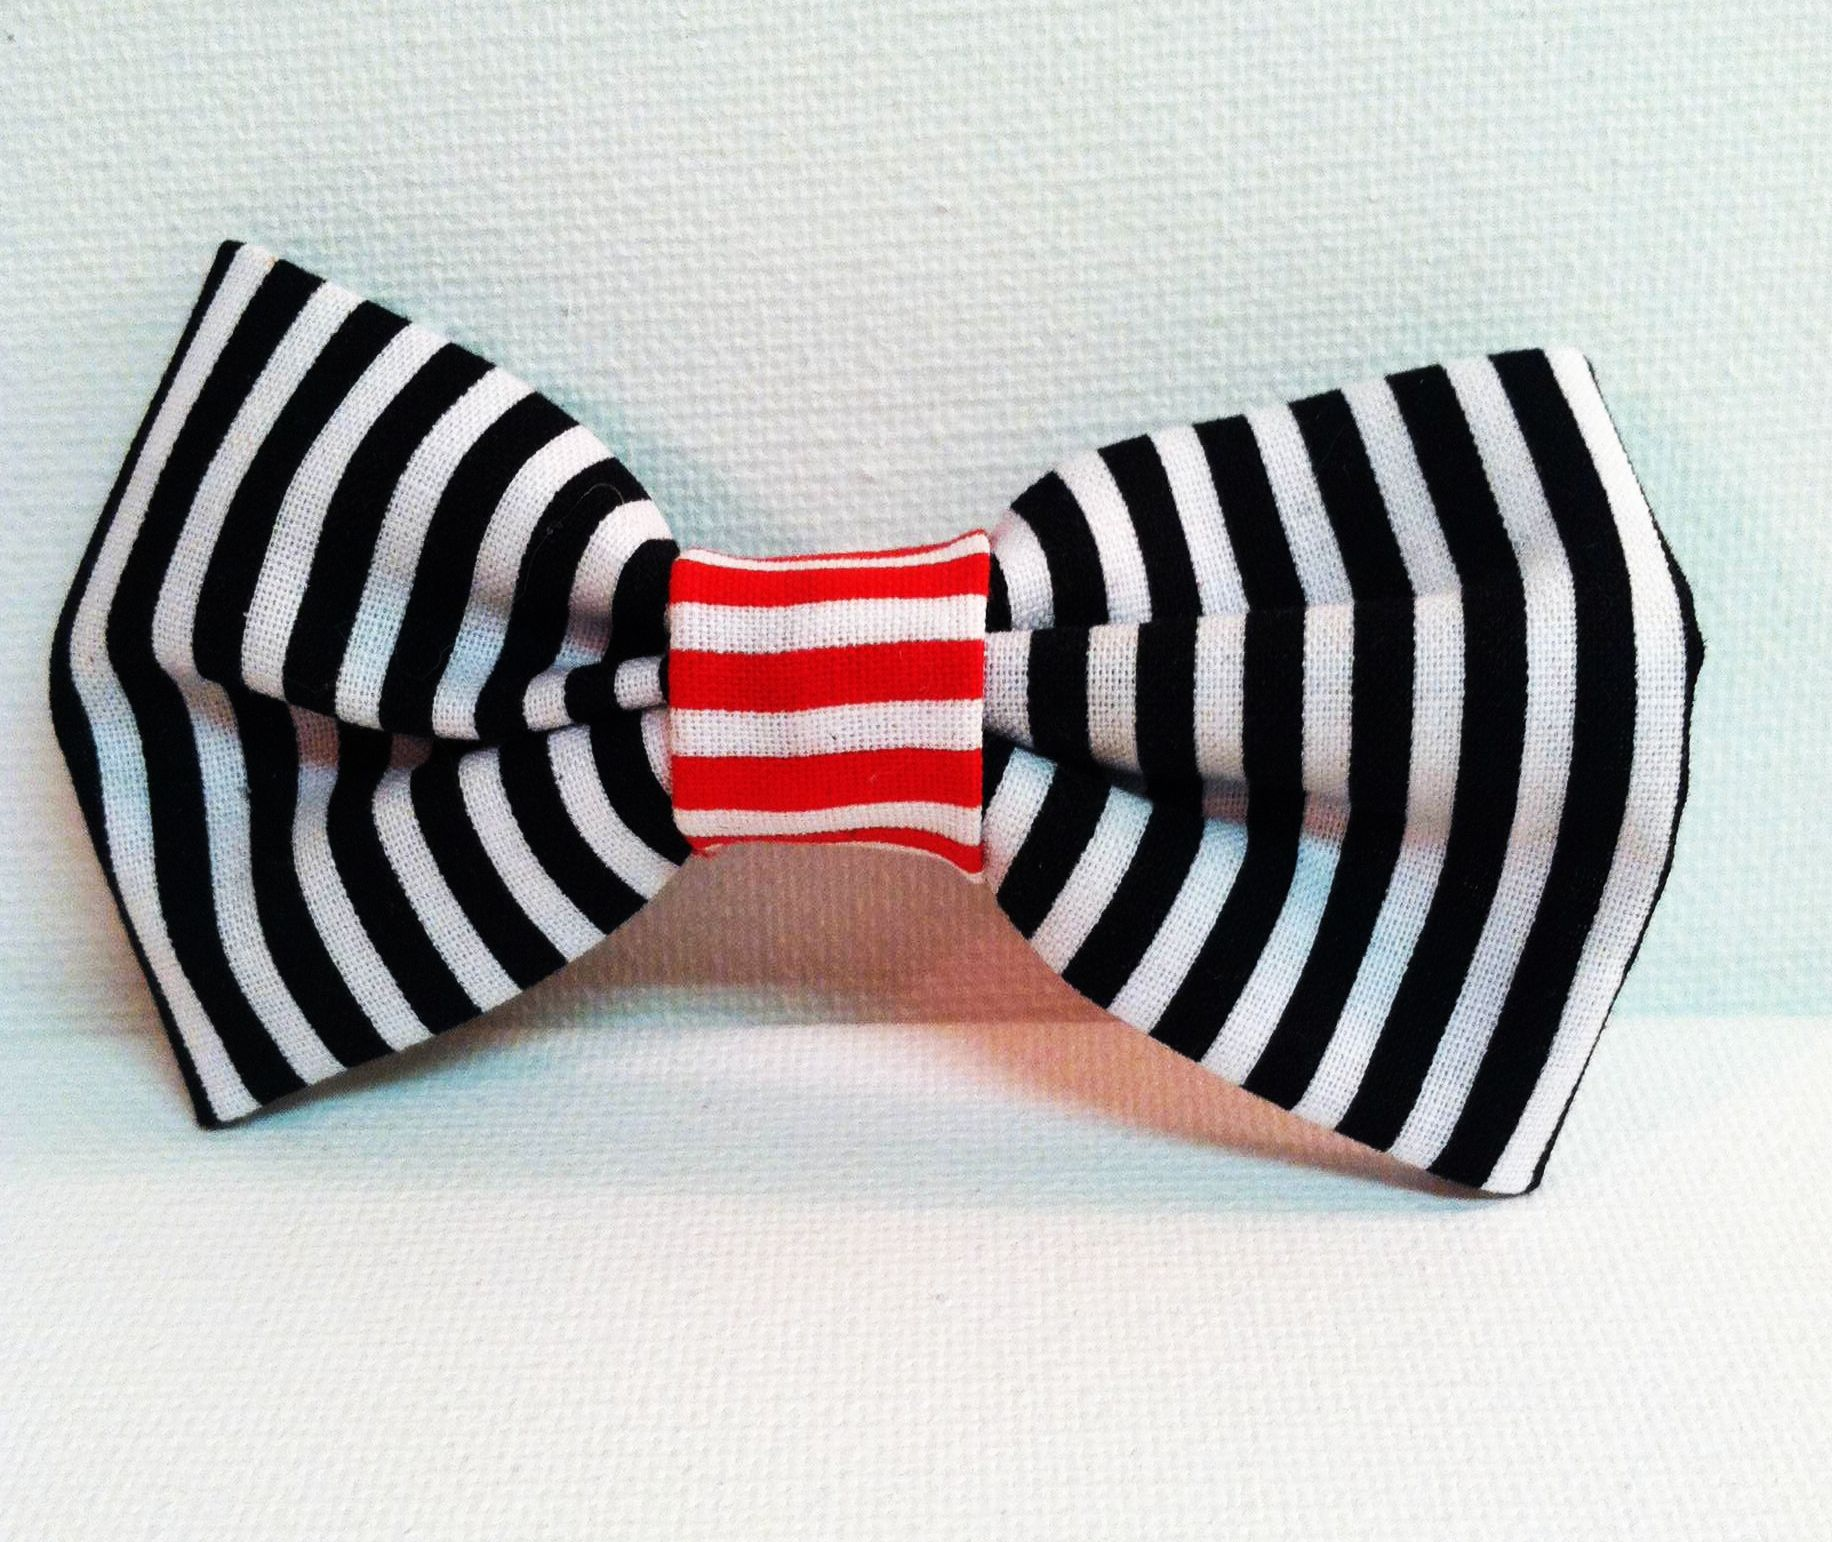 http://kuteasabuttonshop.storenvy.com/products/3783349-stripey-hair-bow